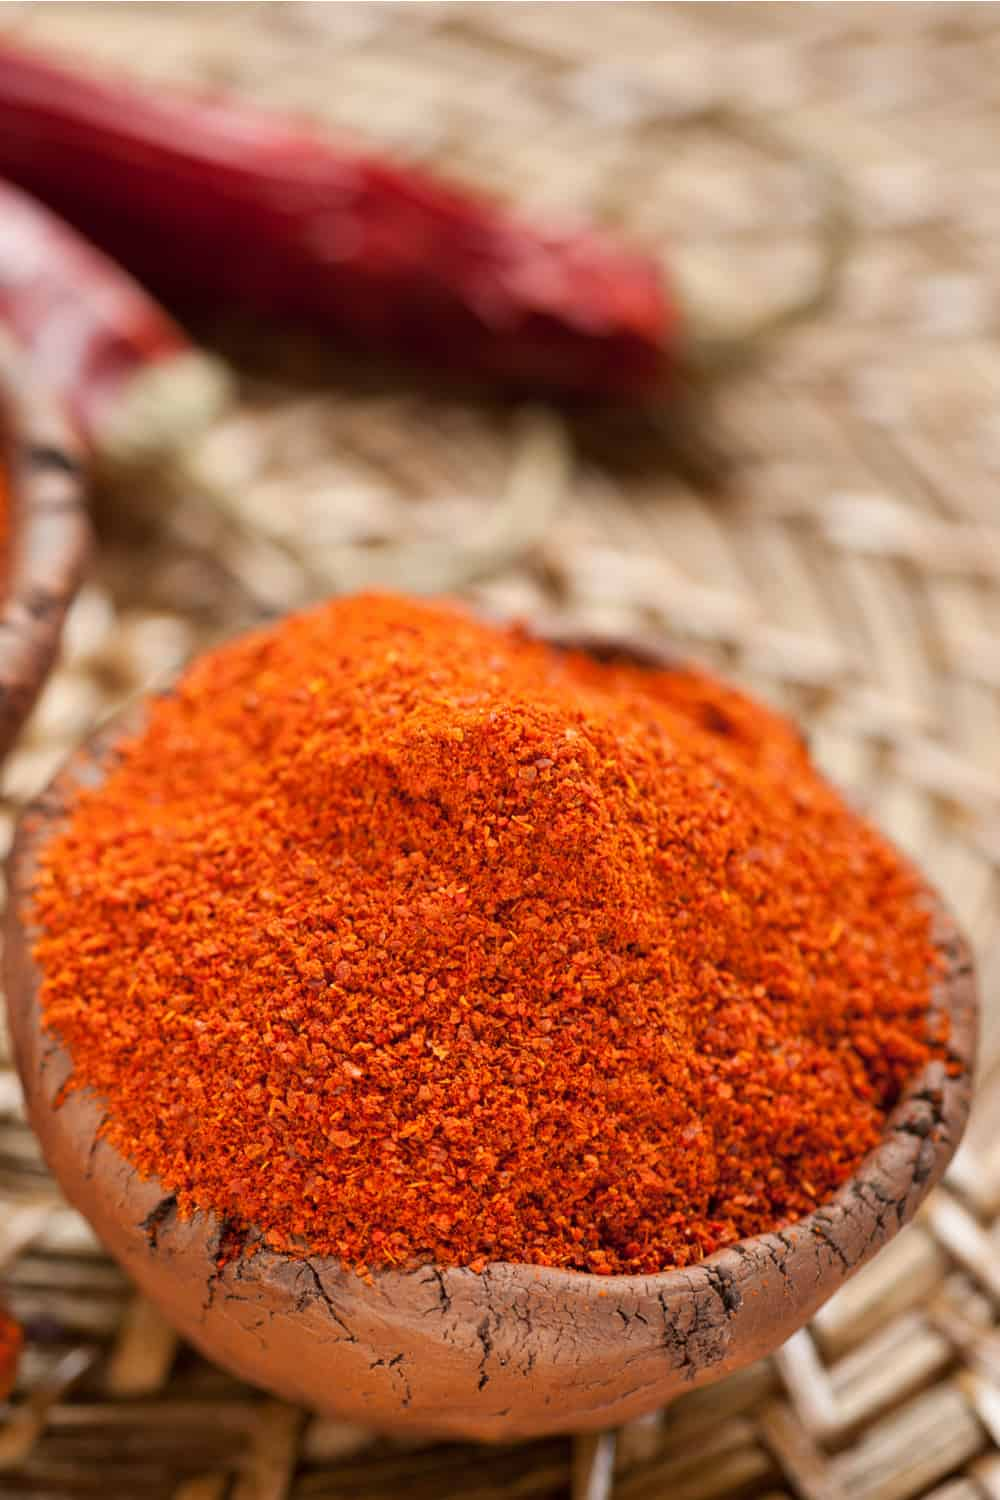 5 Tips To Tell If Chili Powder Has Gone Bad